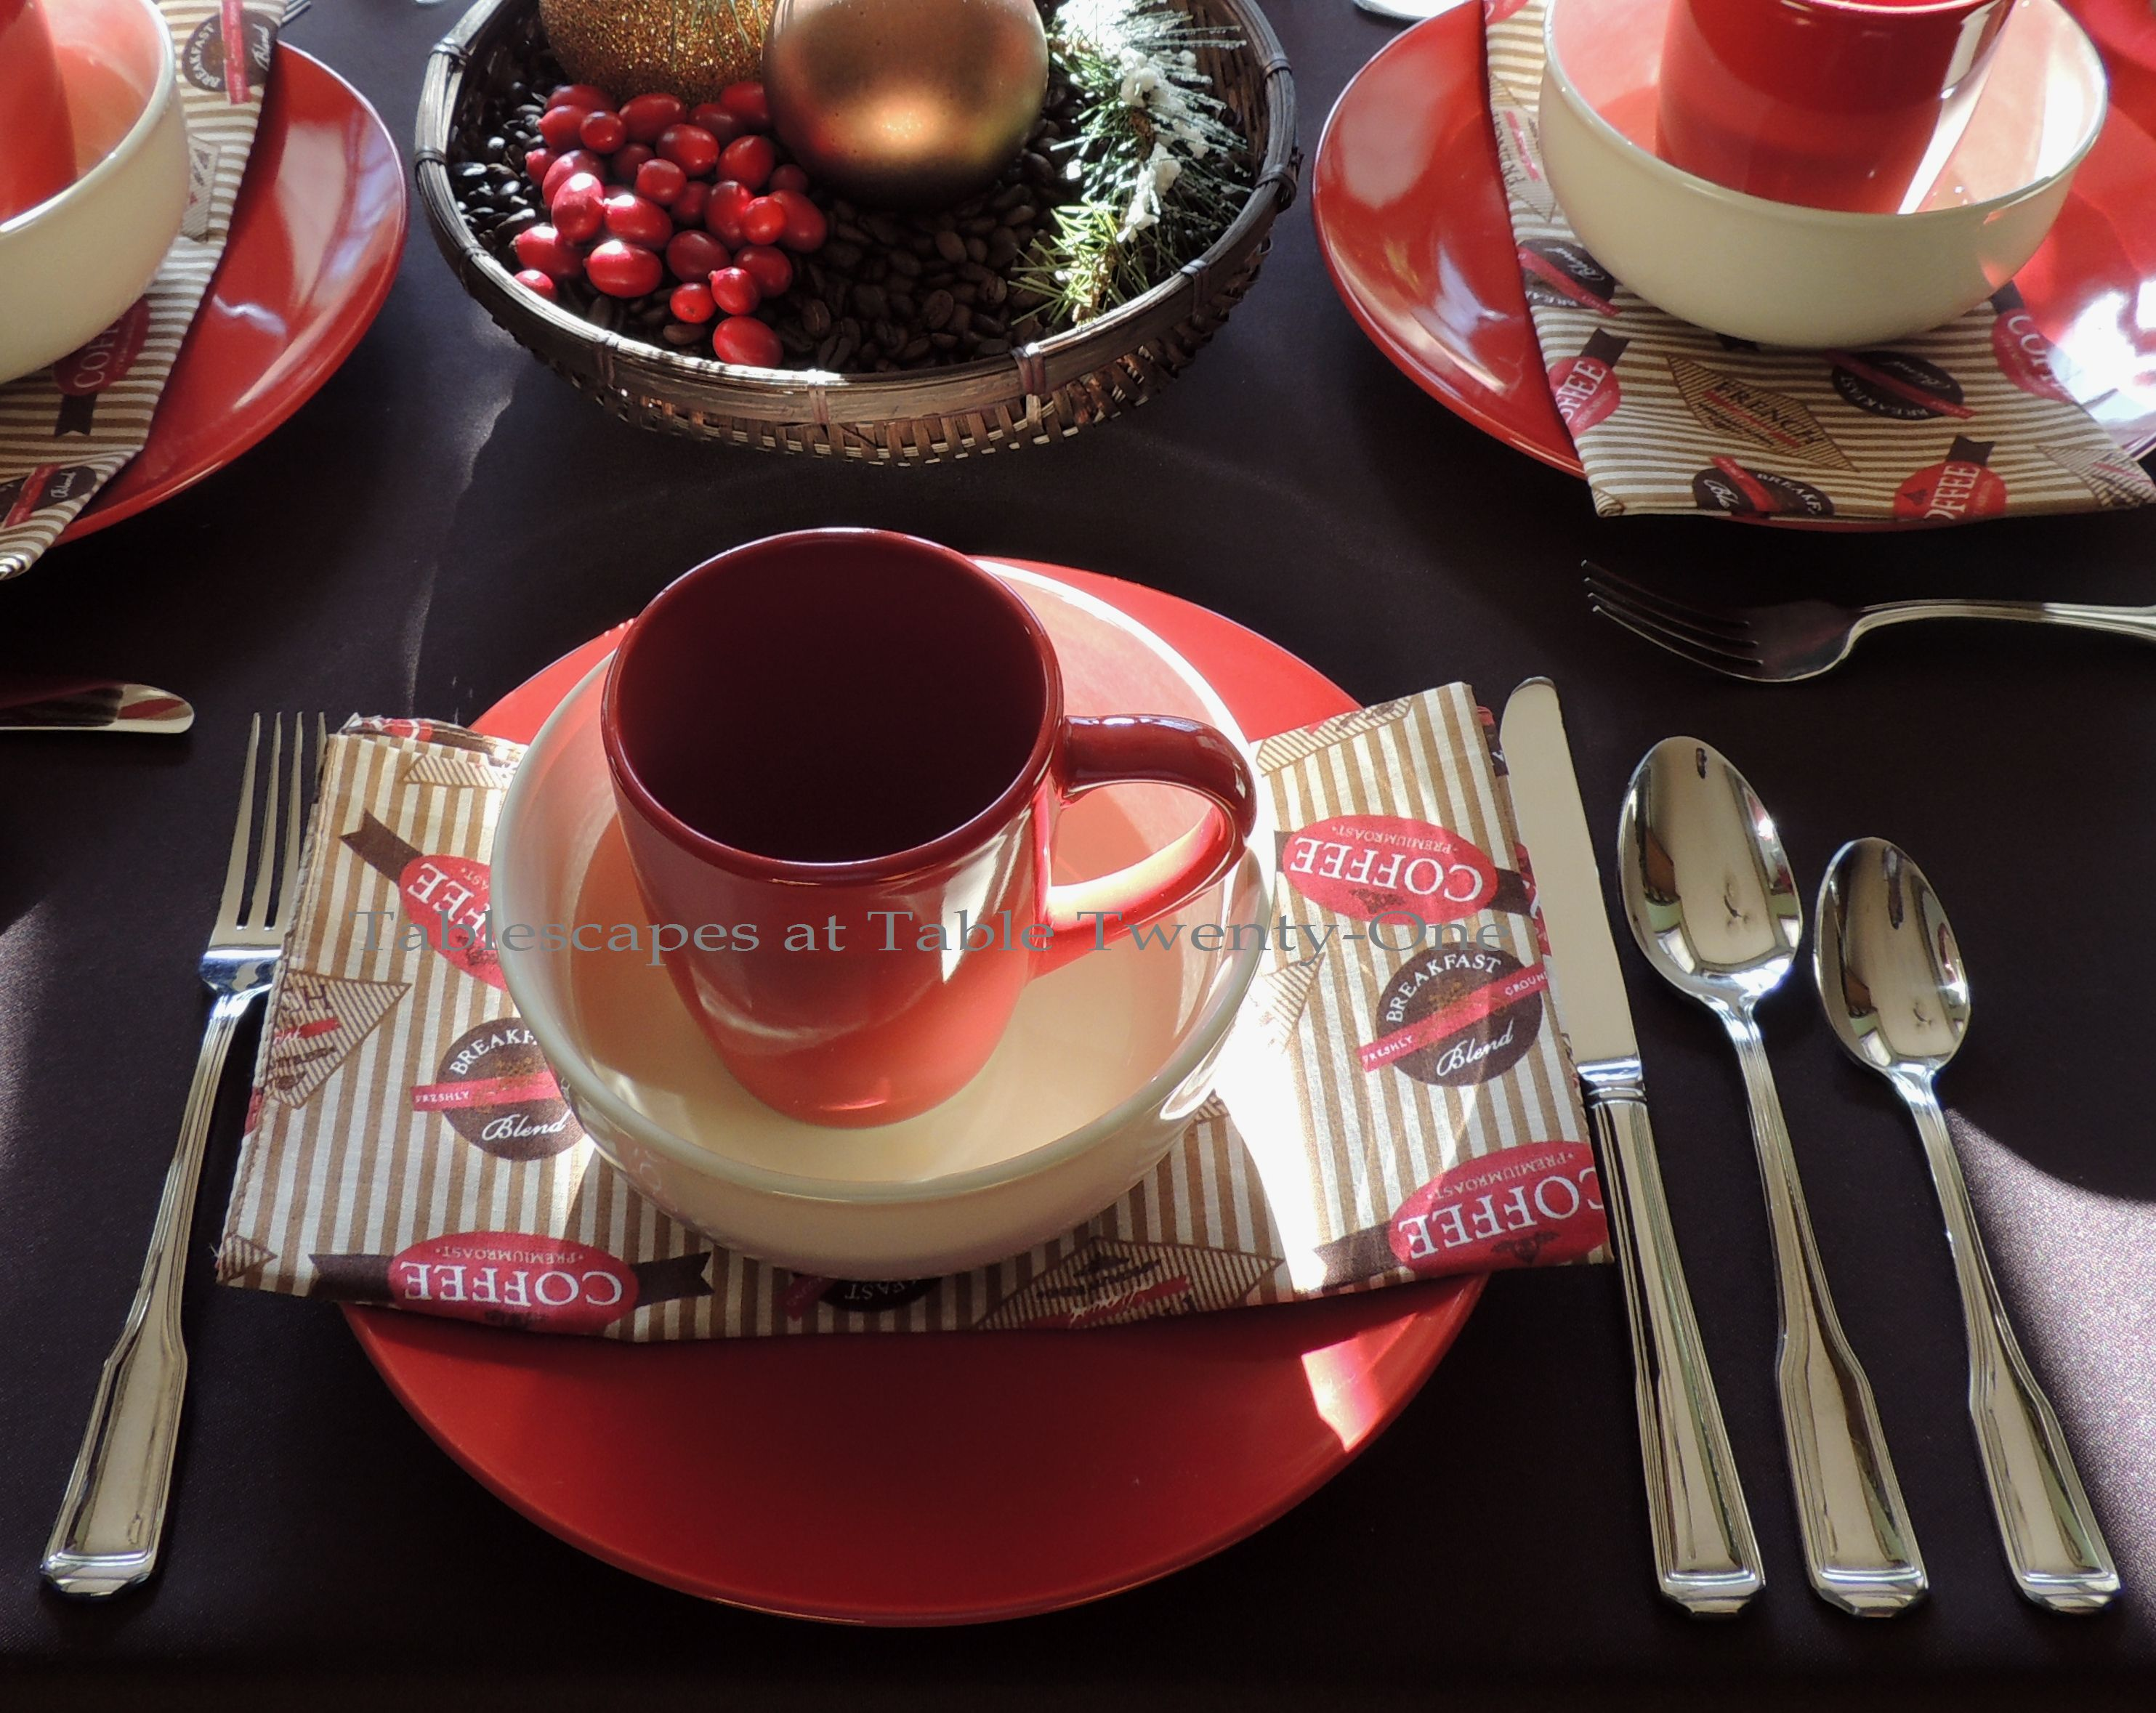 Tablescapes at Table Twenty-One, Christmas Coffee: Place setting